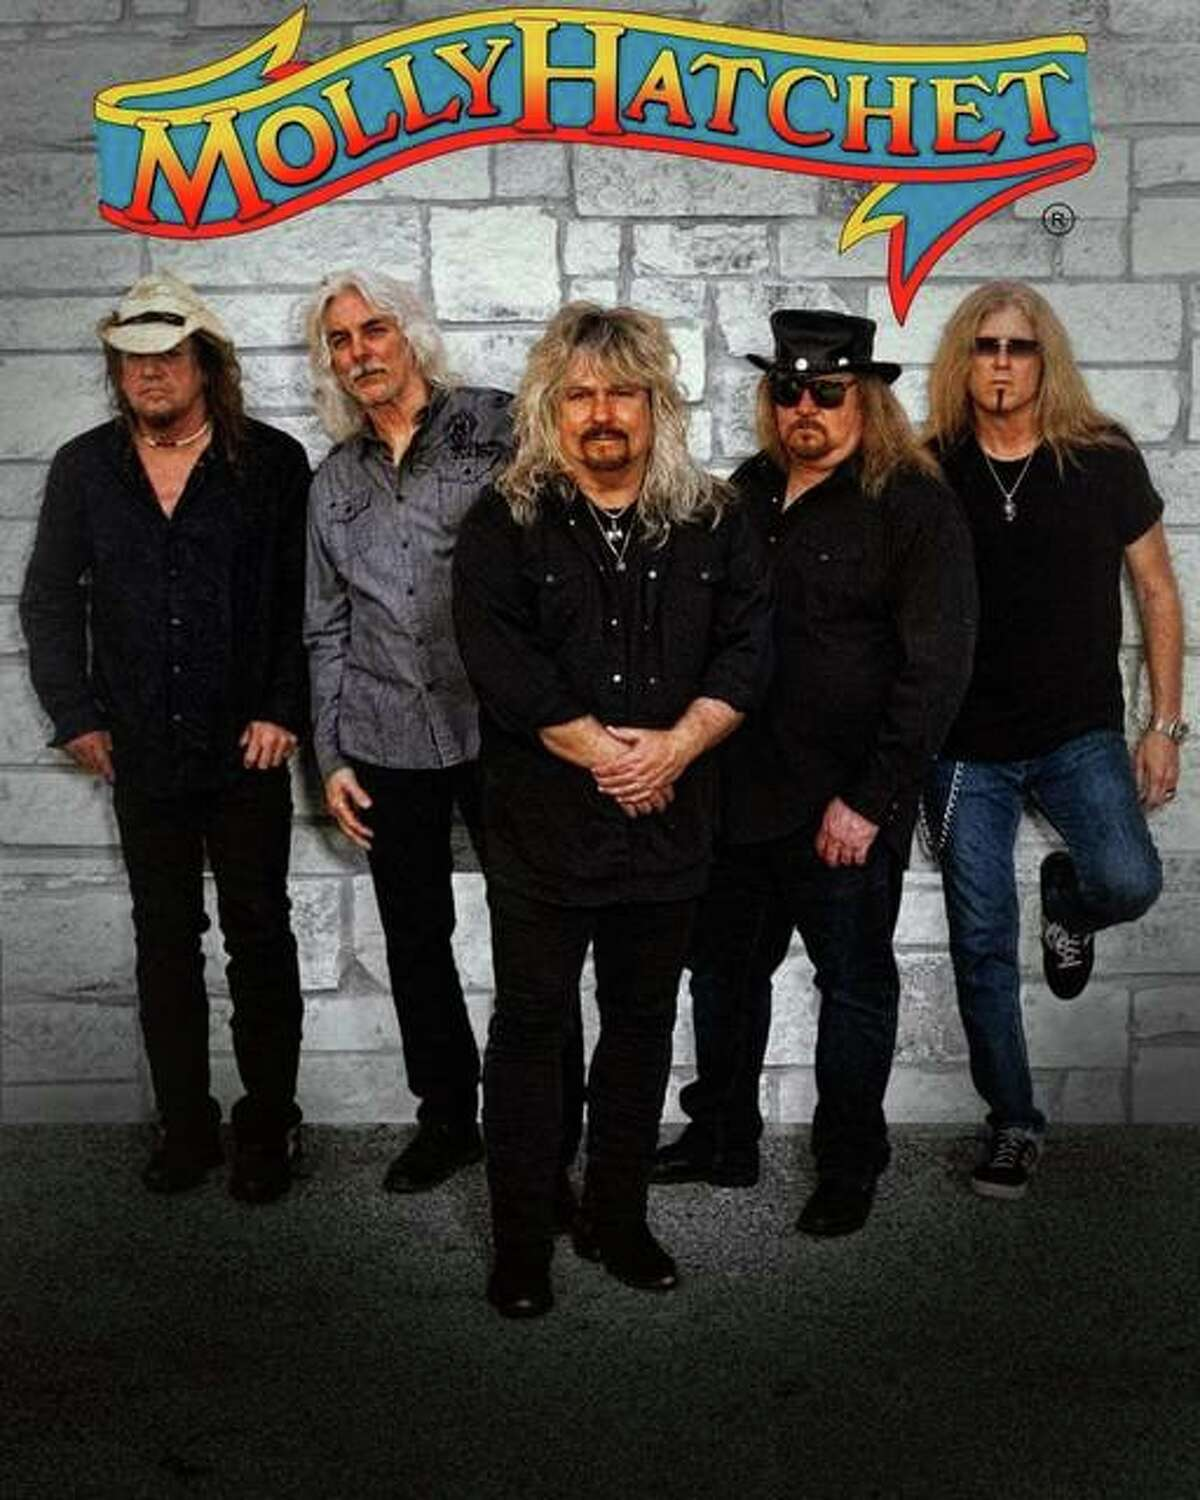 Molly Hatchet will perform a free concert at 7 p.m. Sunday, July 4, at Roper's Regal Beagle, 3042 Godfrey Road, in Godfrey.